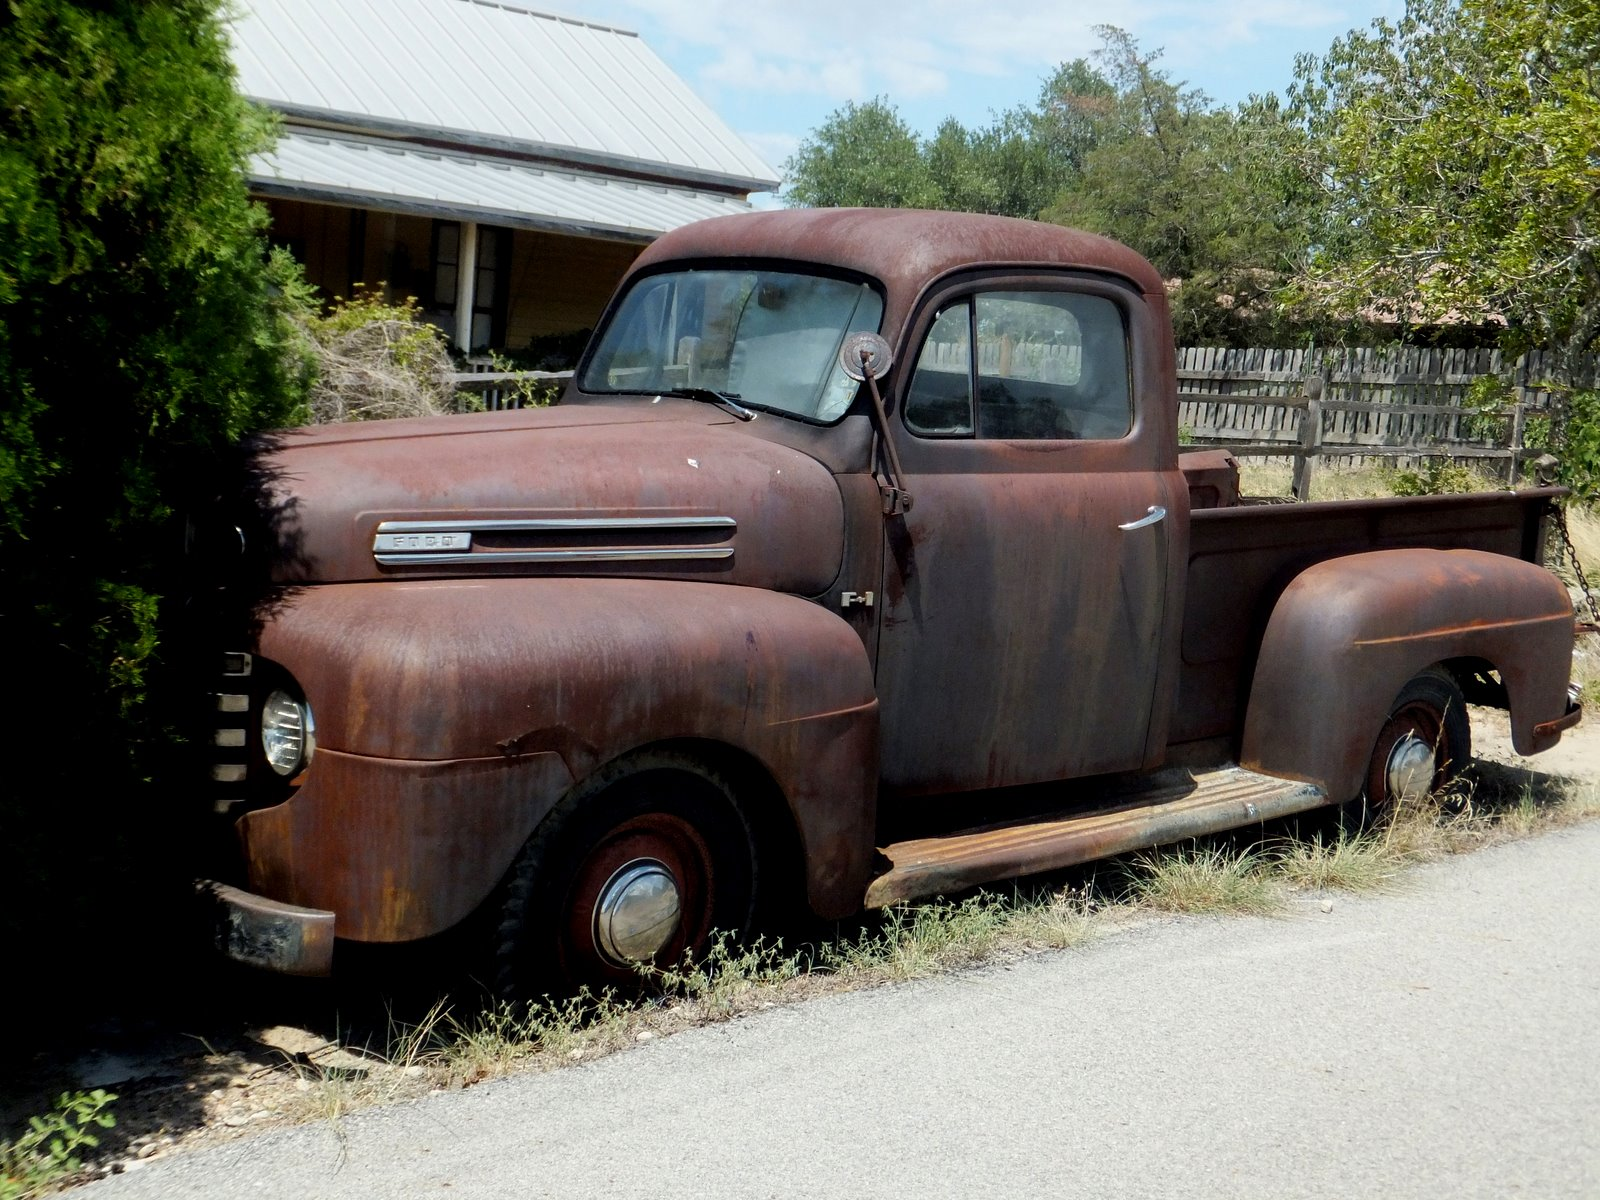 Free photo: Rusty Old Truck - rusty, truck, rust - Creative Commons ...